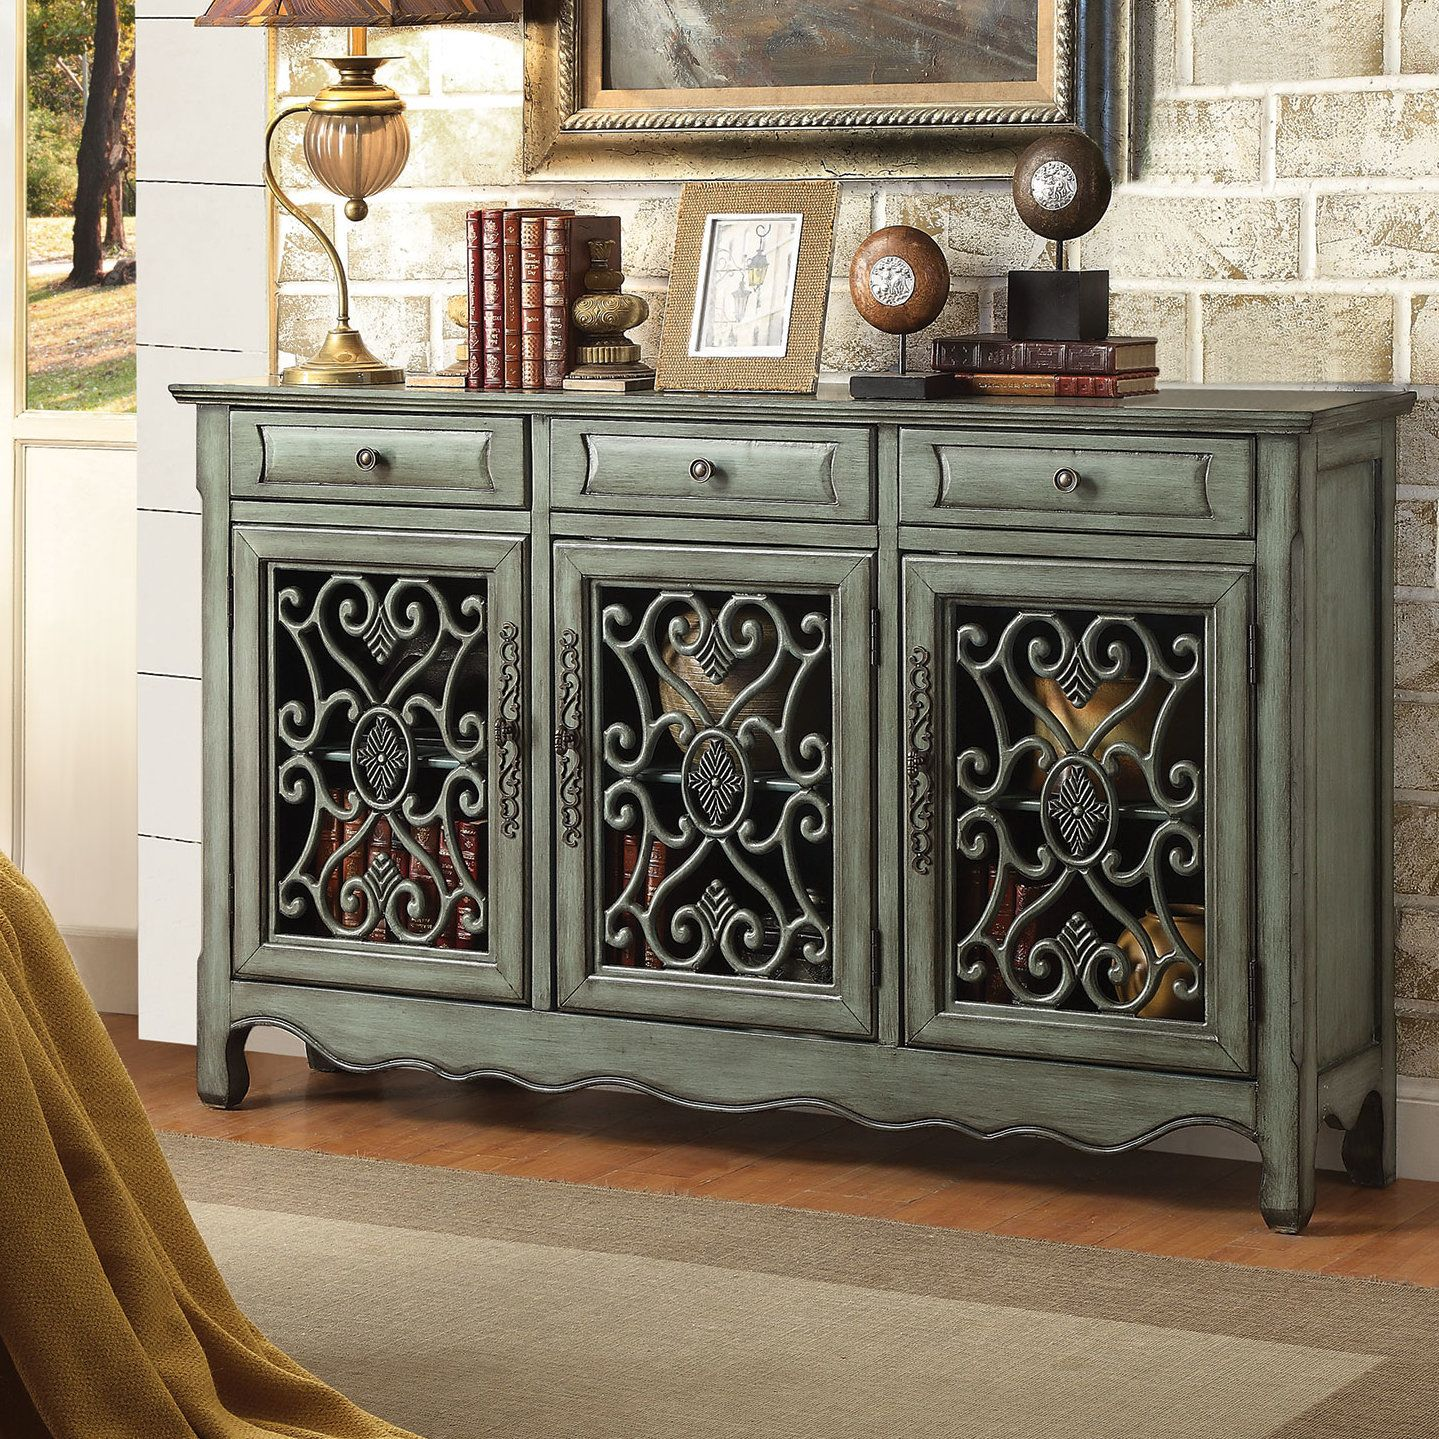 martin target bayside knobs door antique furnishings mirimyn windham media and whalen south furniture shane hinges doors kitchen curio cabinets white africa one cabinet latche